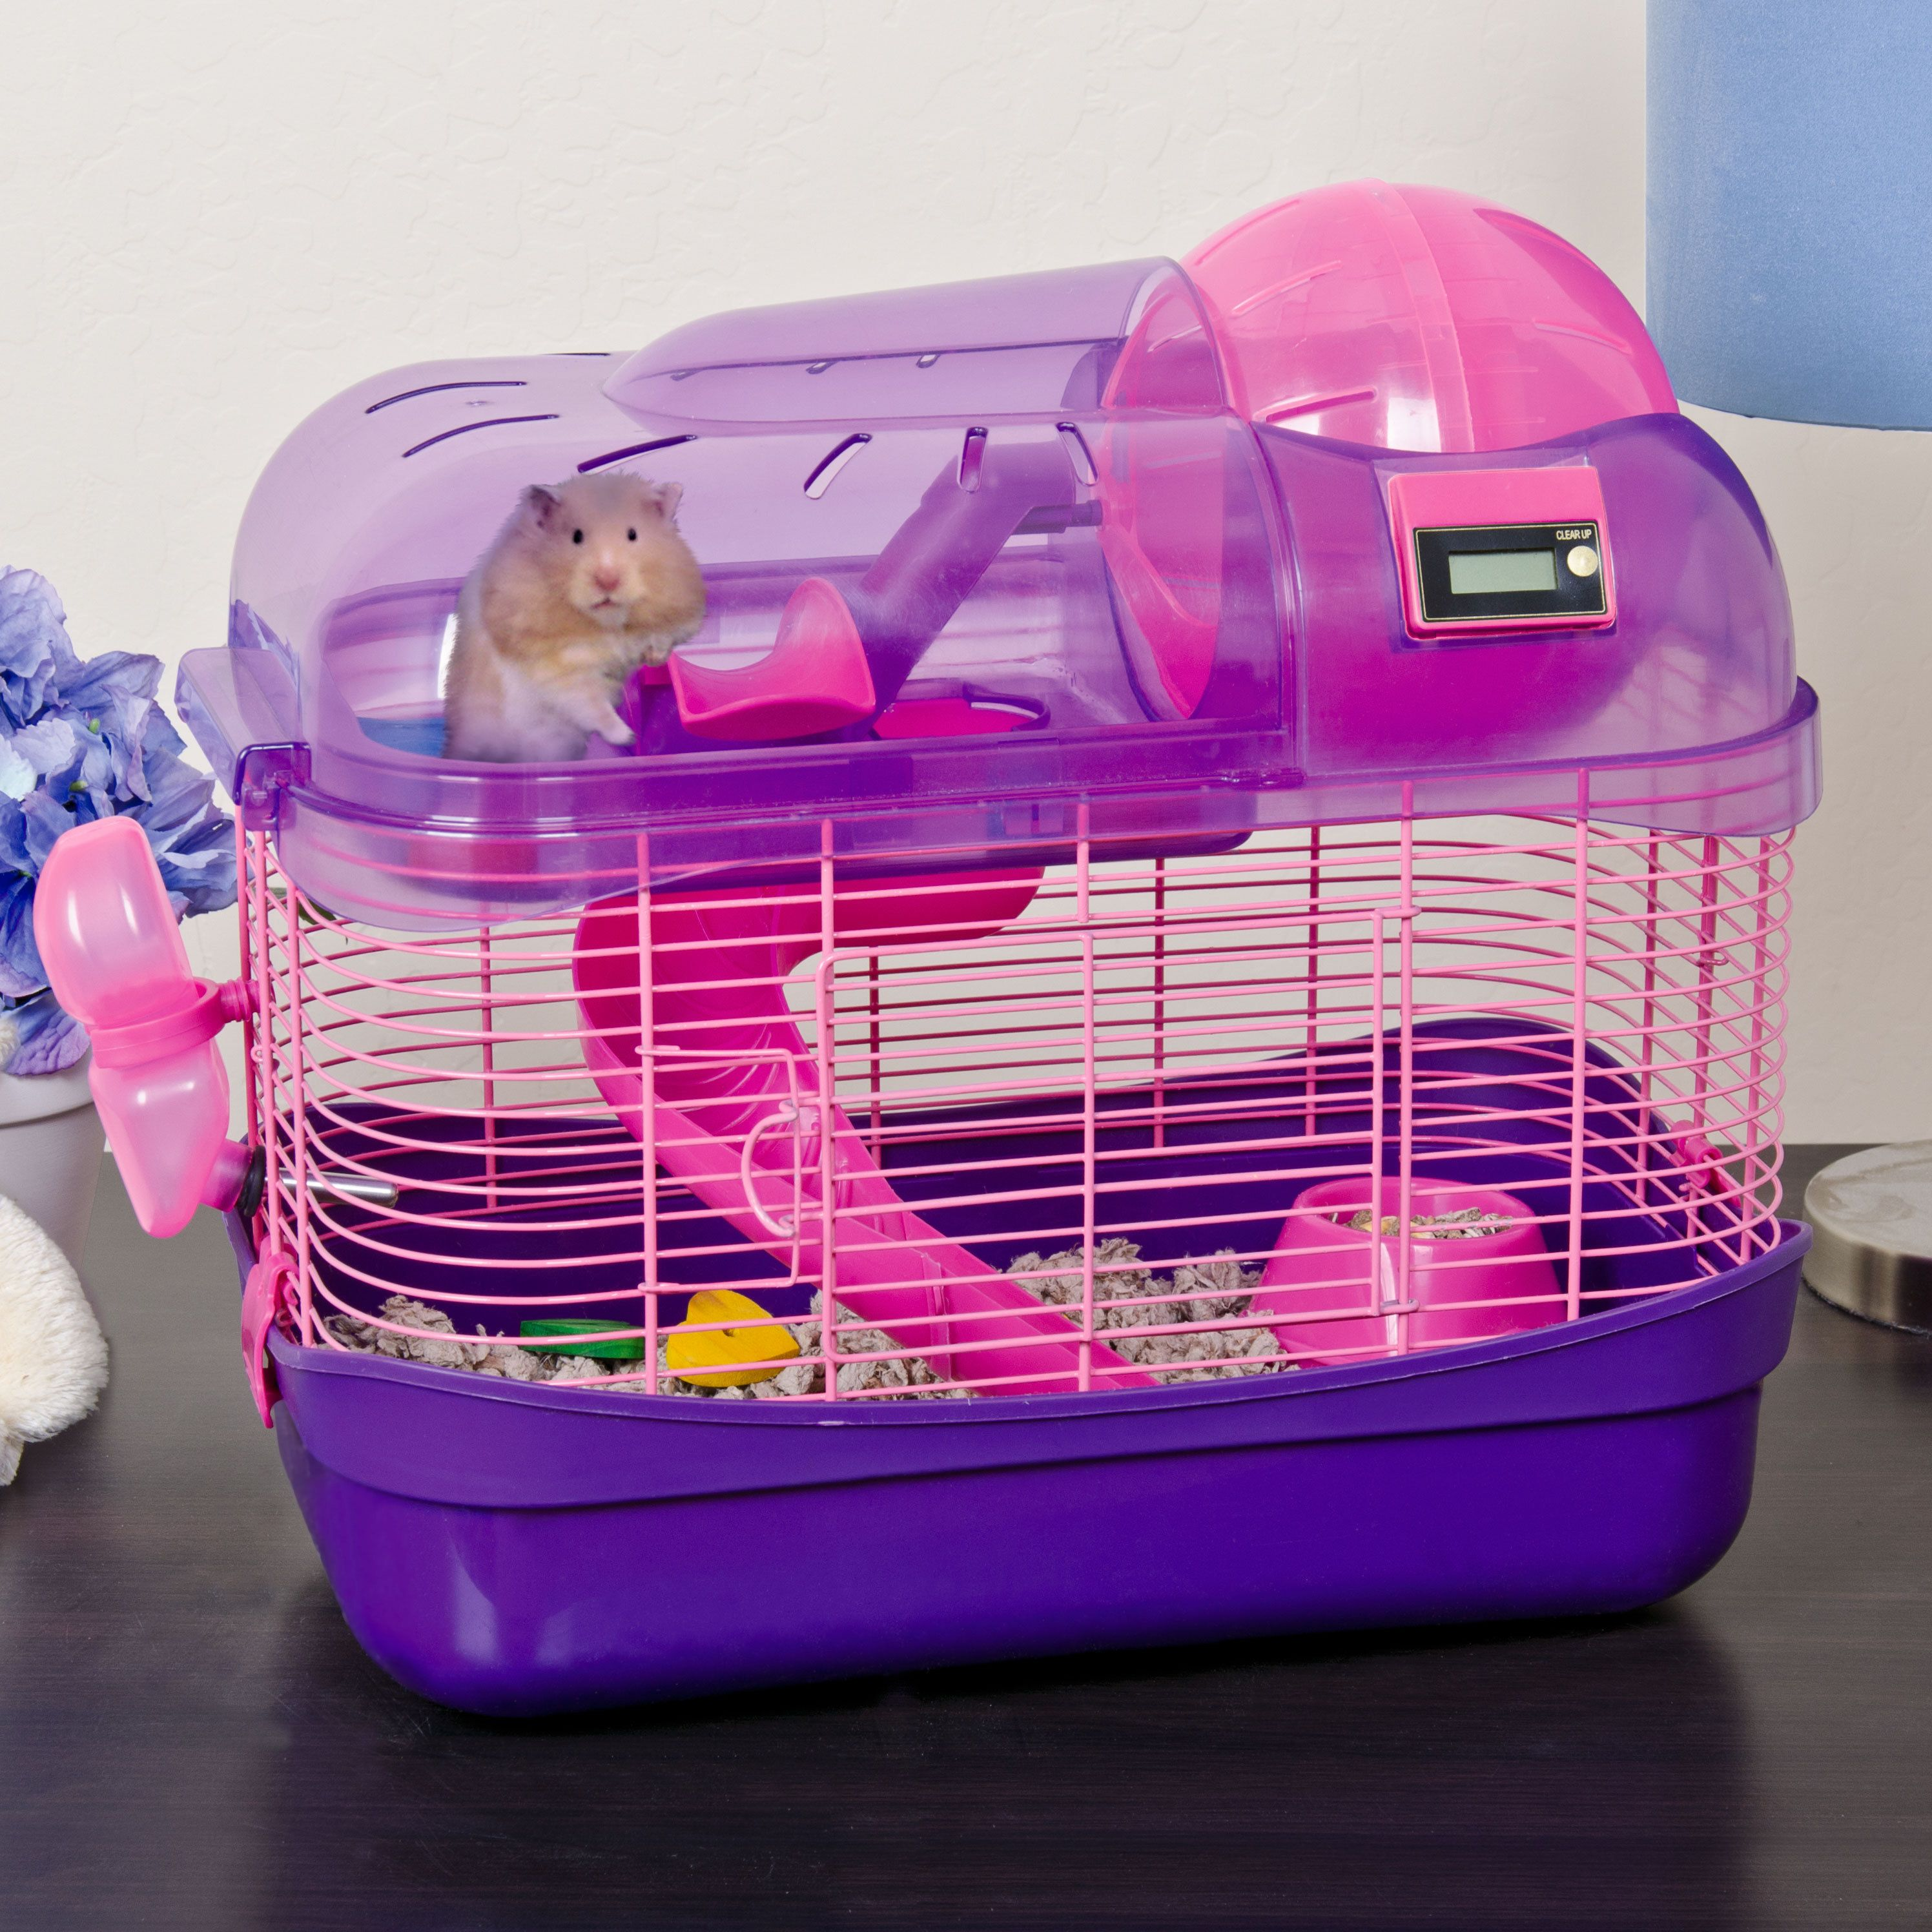 ware spin city health club hamster cage purple spin. Black Bedroom Furniture Sets. Home Design Ideas